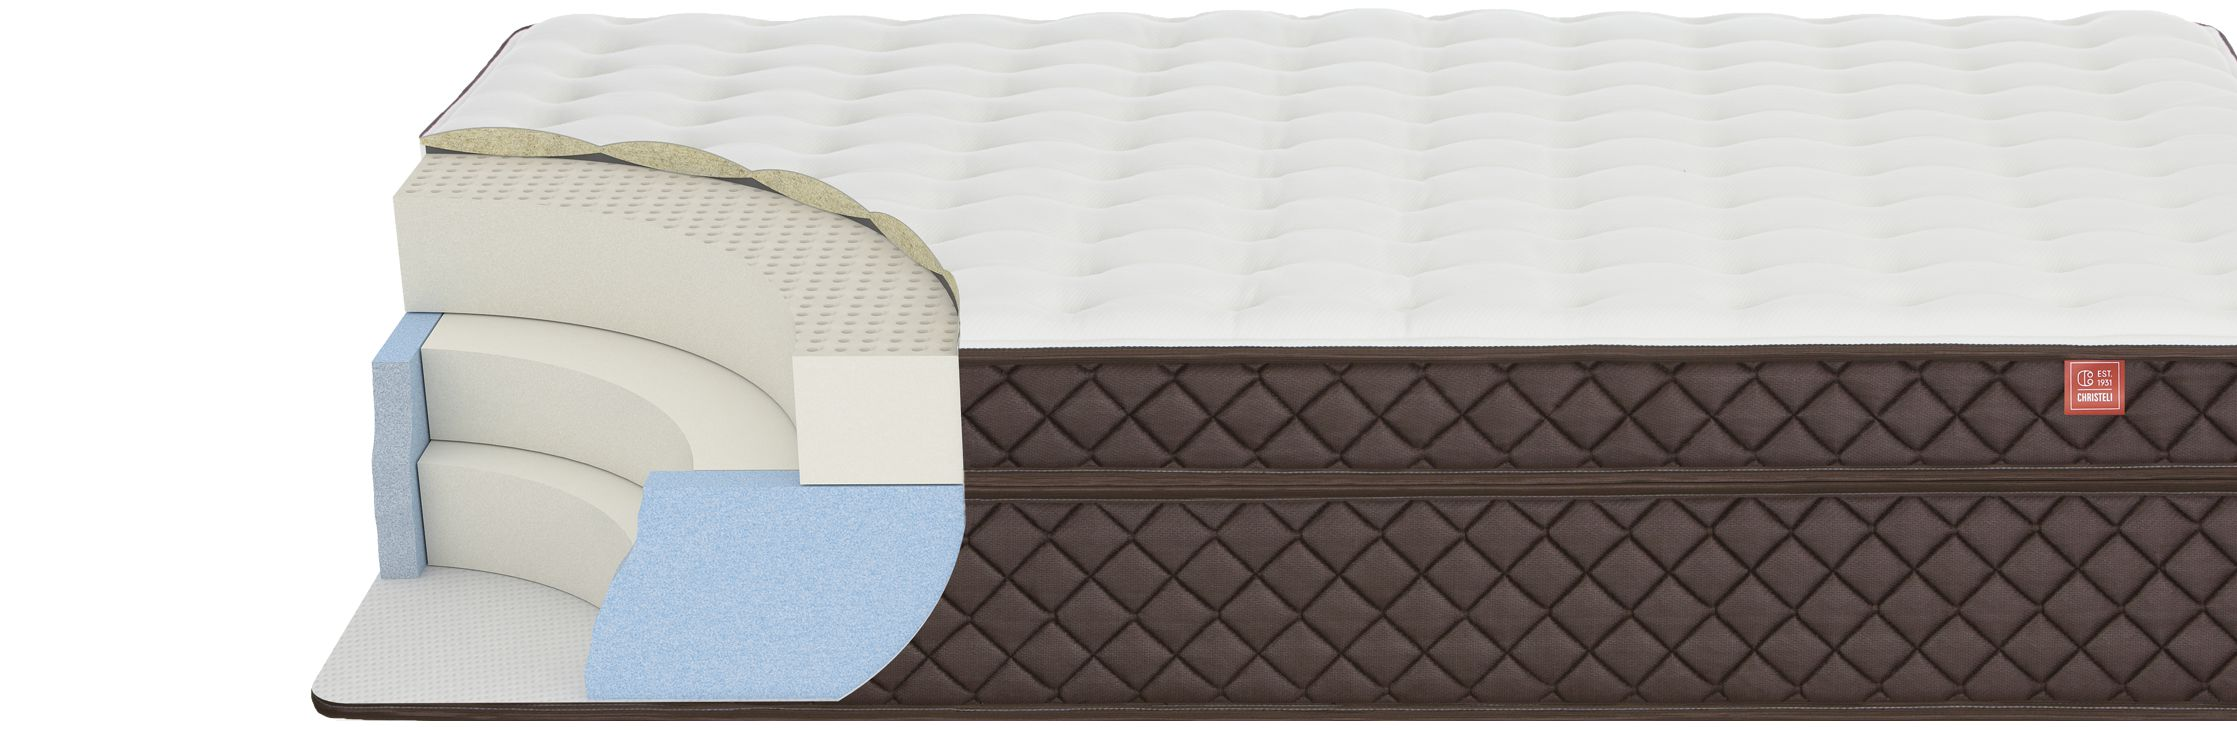 charleston christeli mattress memory beautiful inch electric adjustable of luxury the bed awesome imperial beds foam